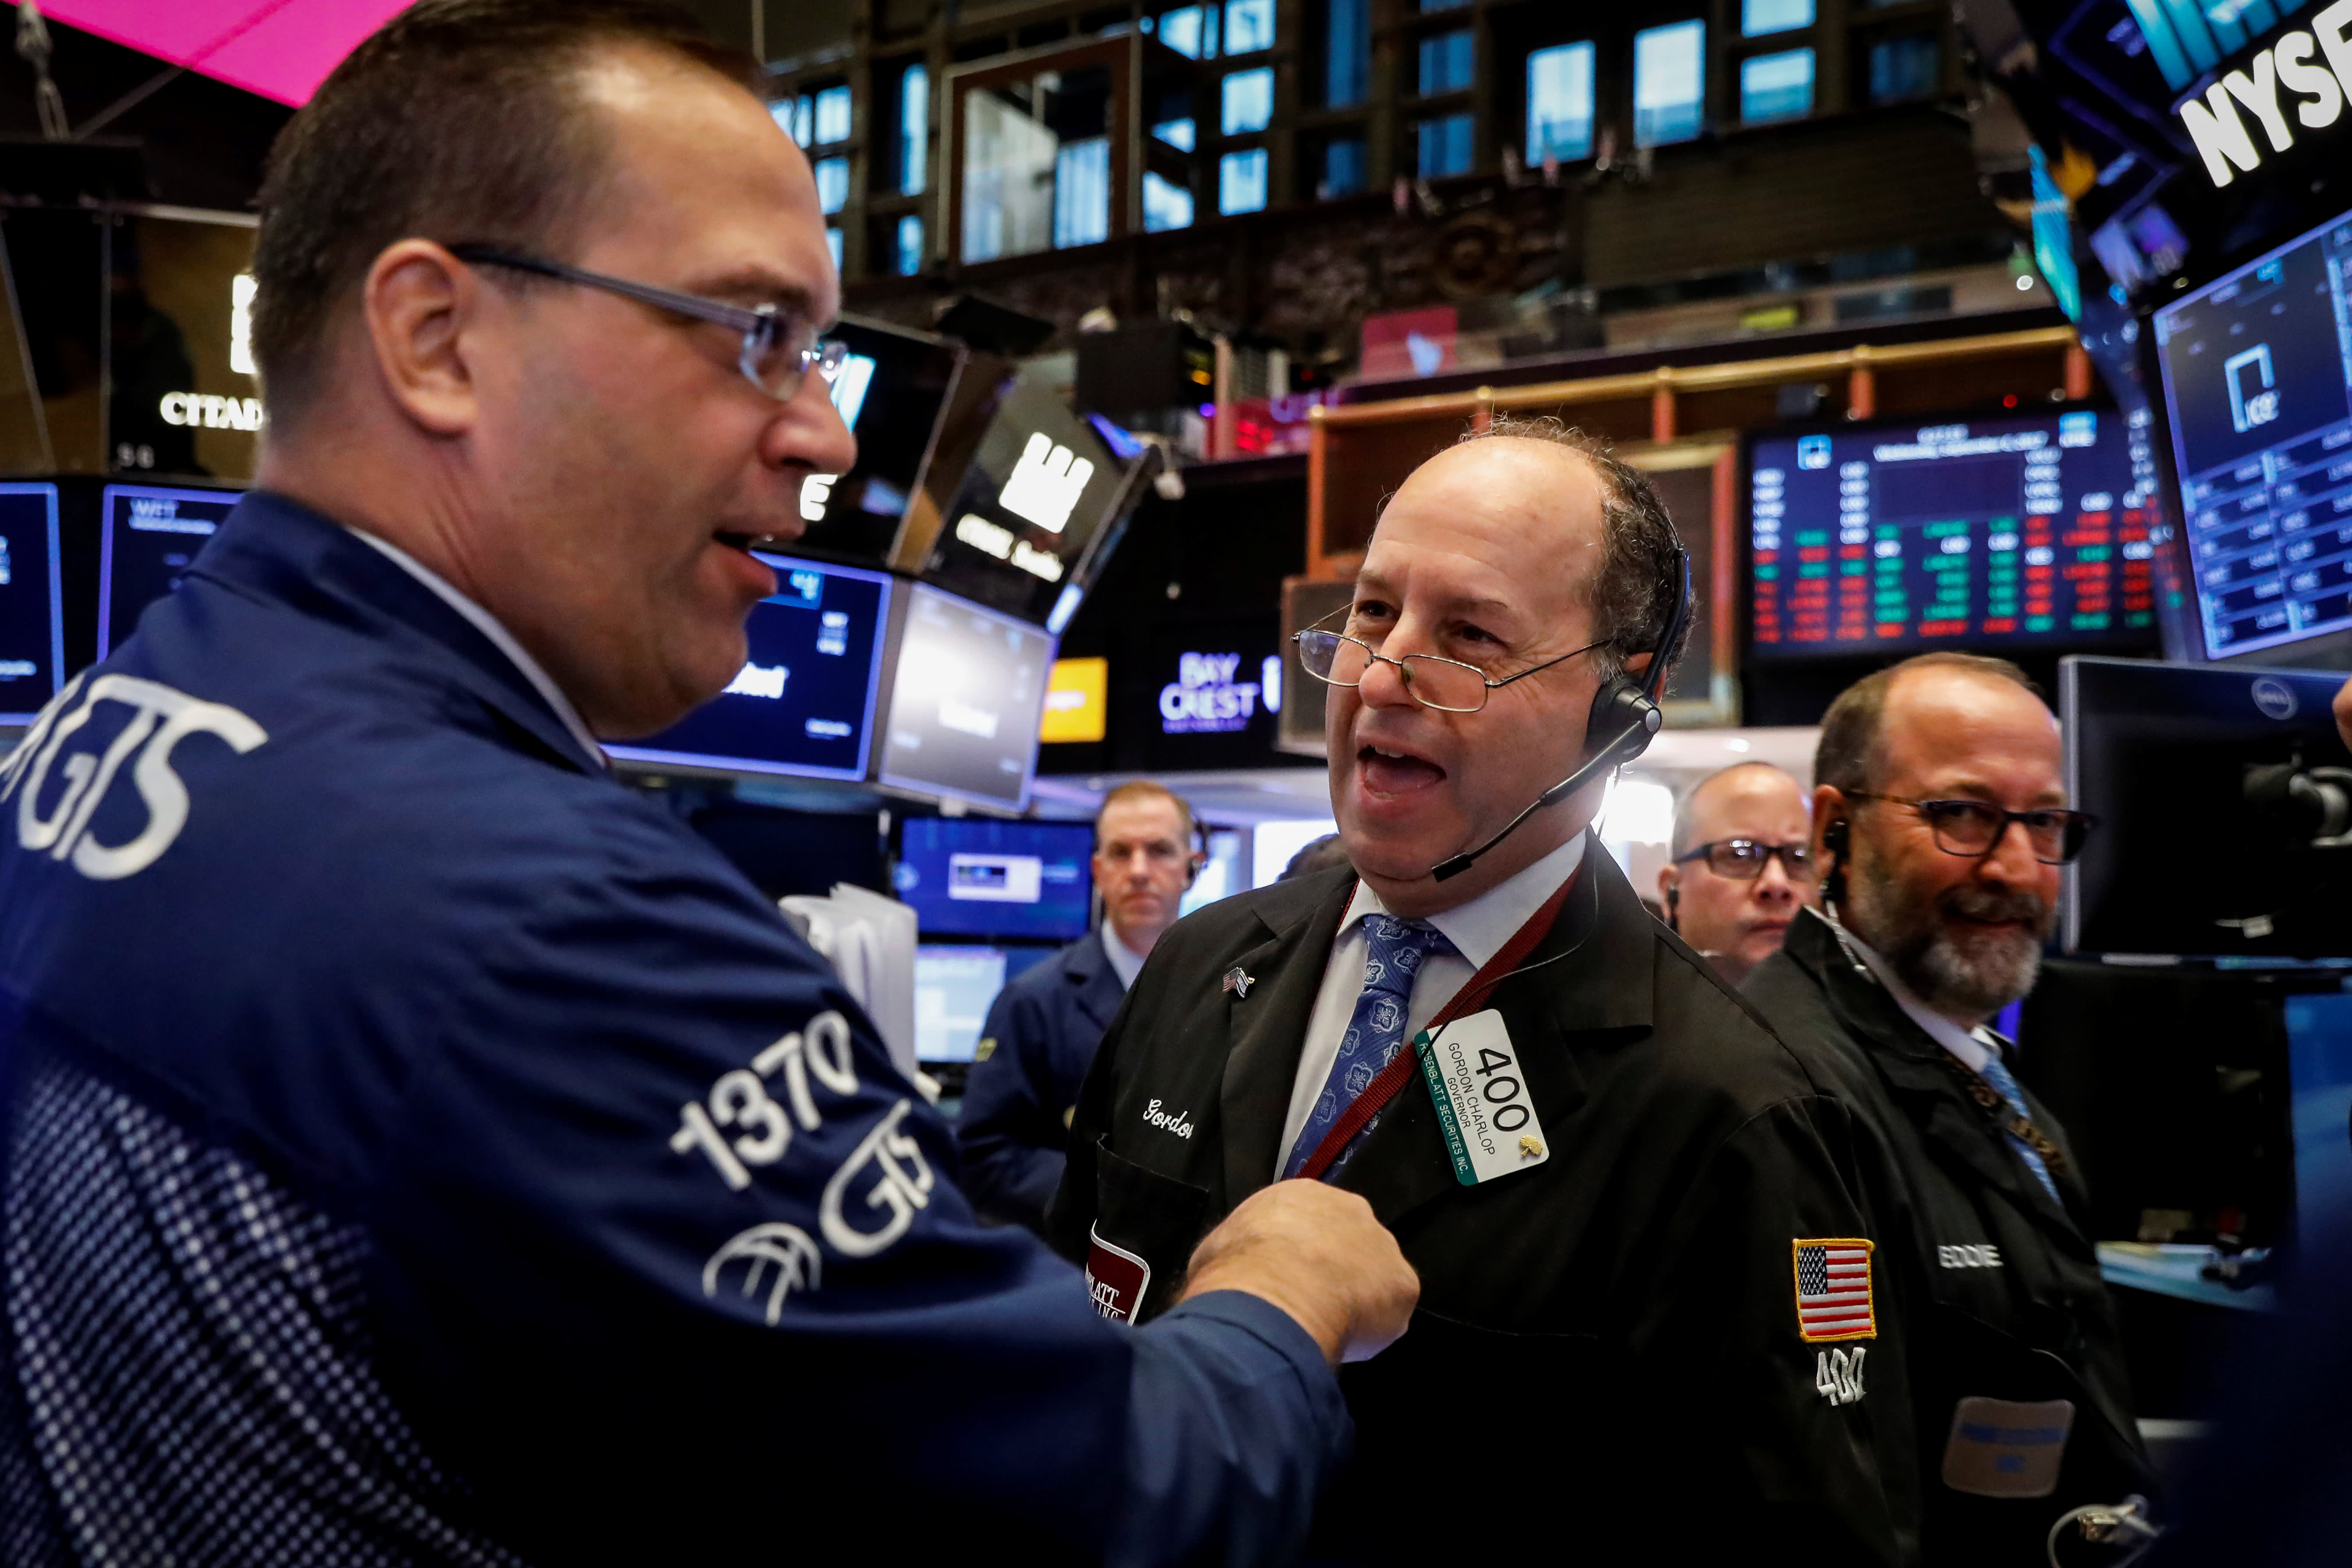 Here's what happened to the stock market on Monday